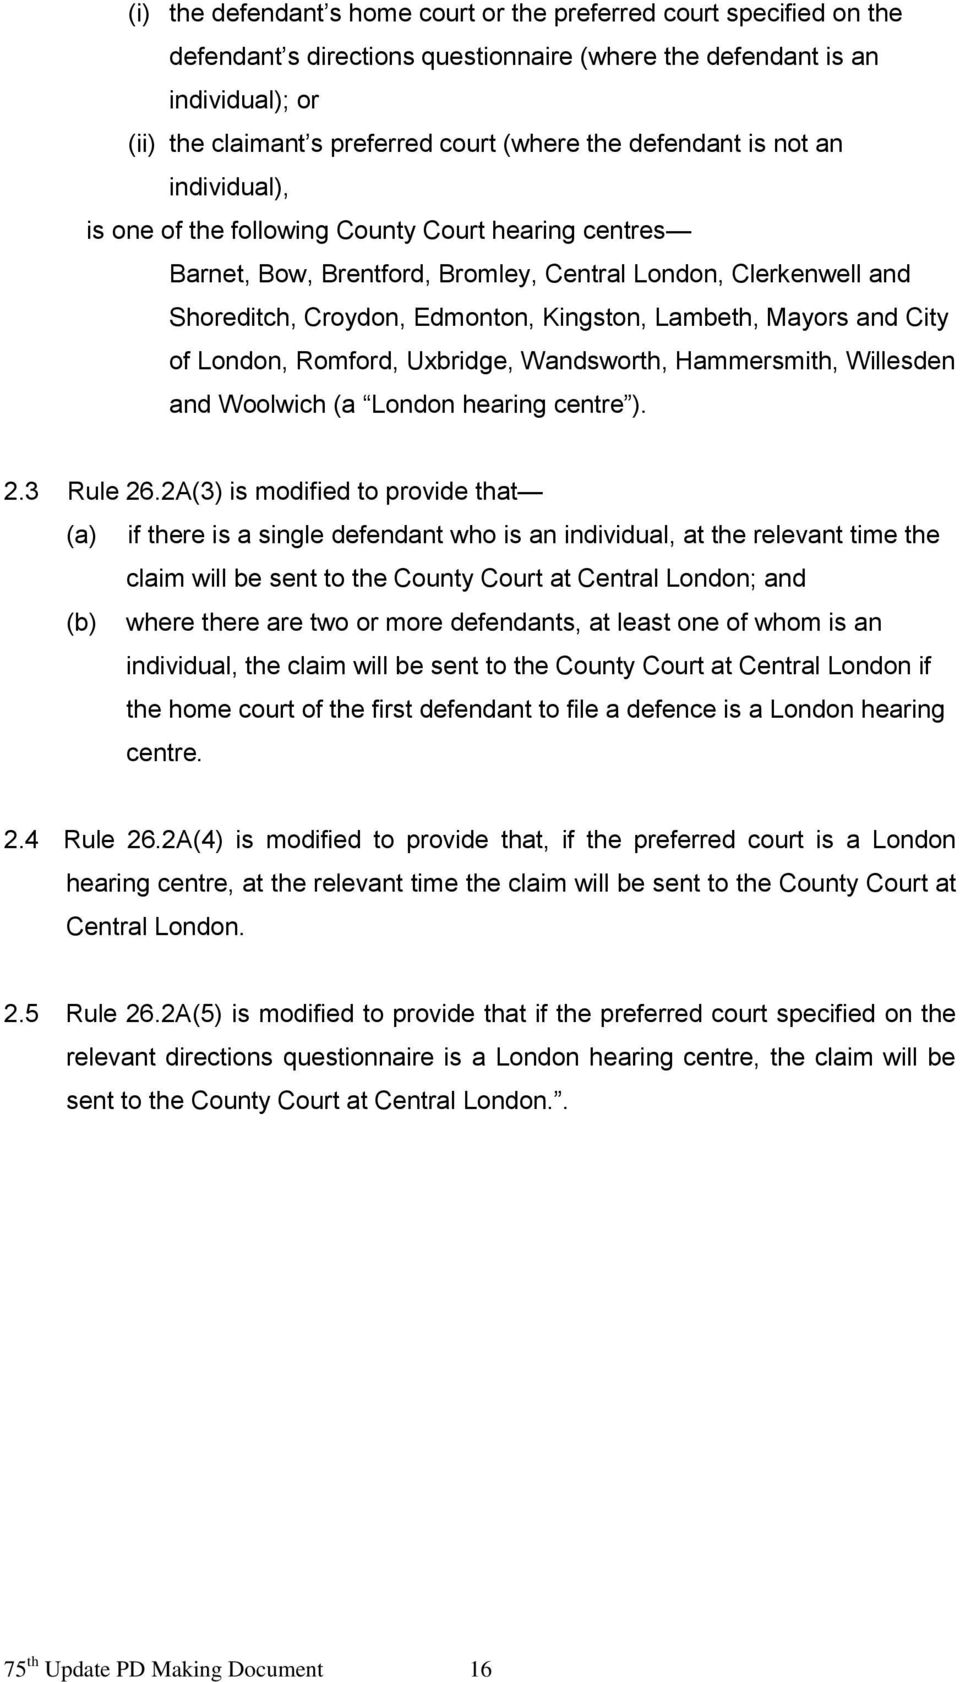 Lambeth, Mayors and City of London, Romford, Uxbridge, Wandsworth, Hammersmith, Willesden and Woolwich (a London hearing centre ). 2.3 Rule 26.